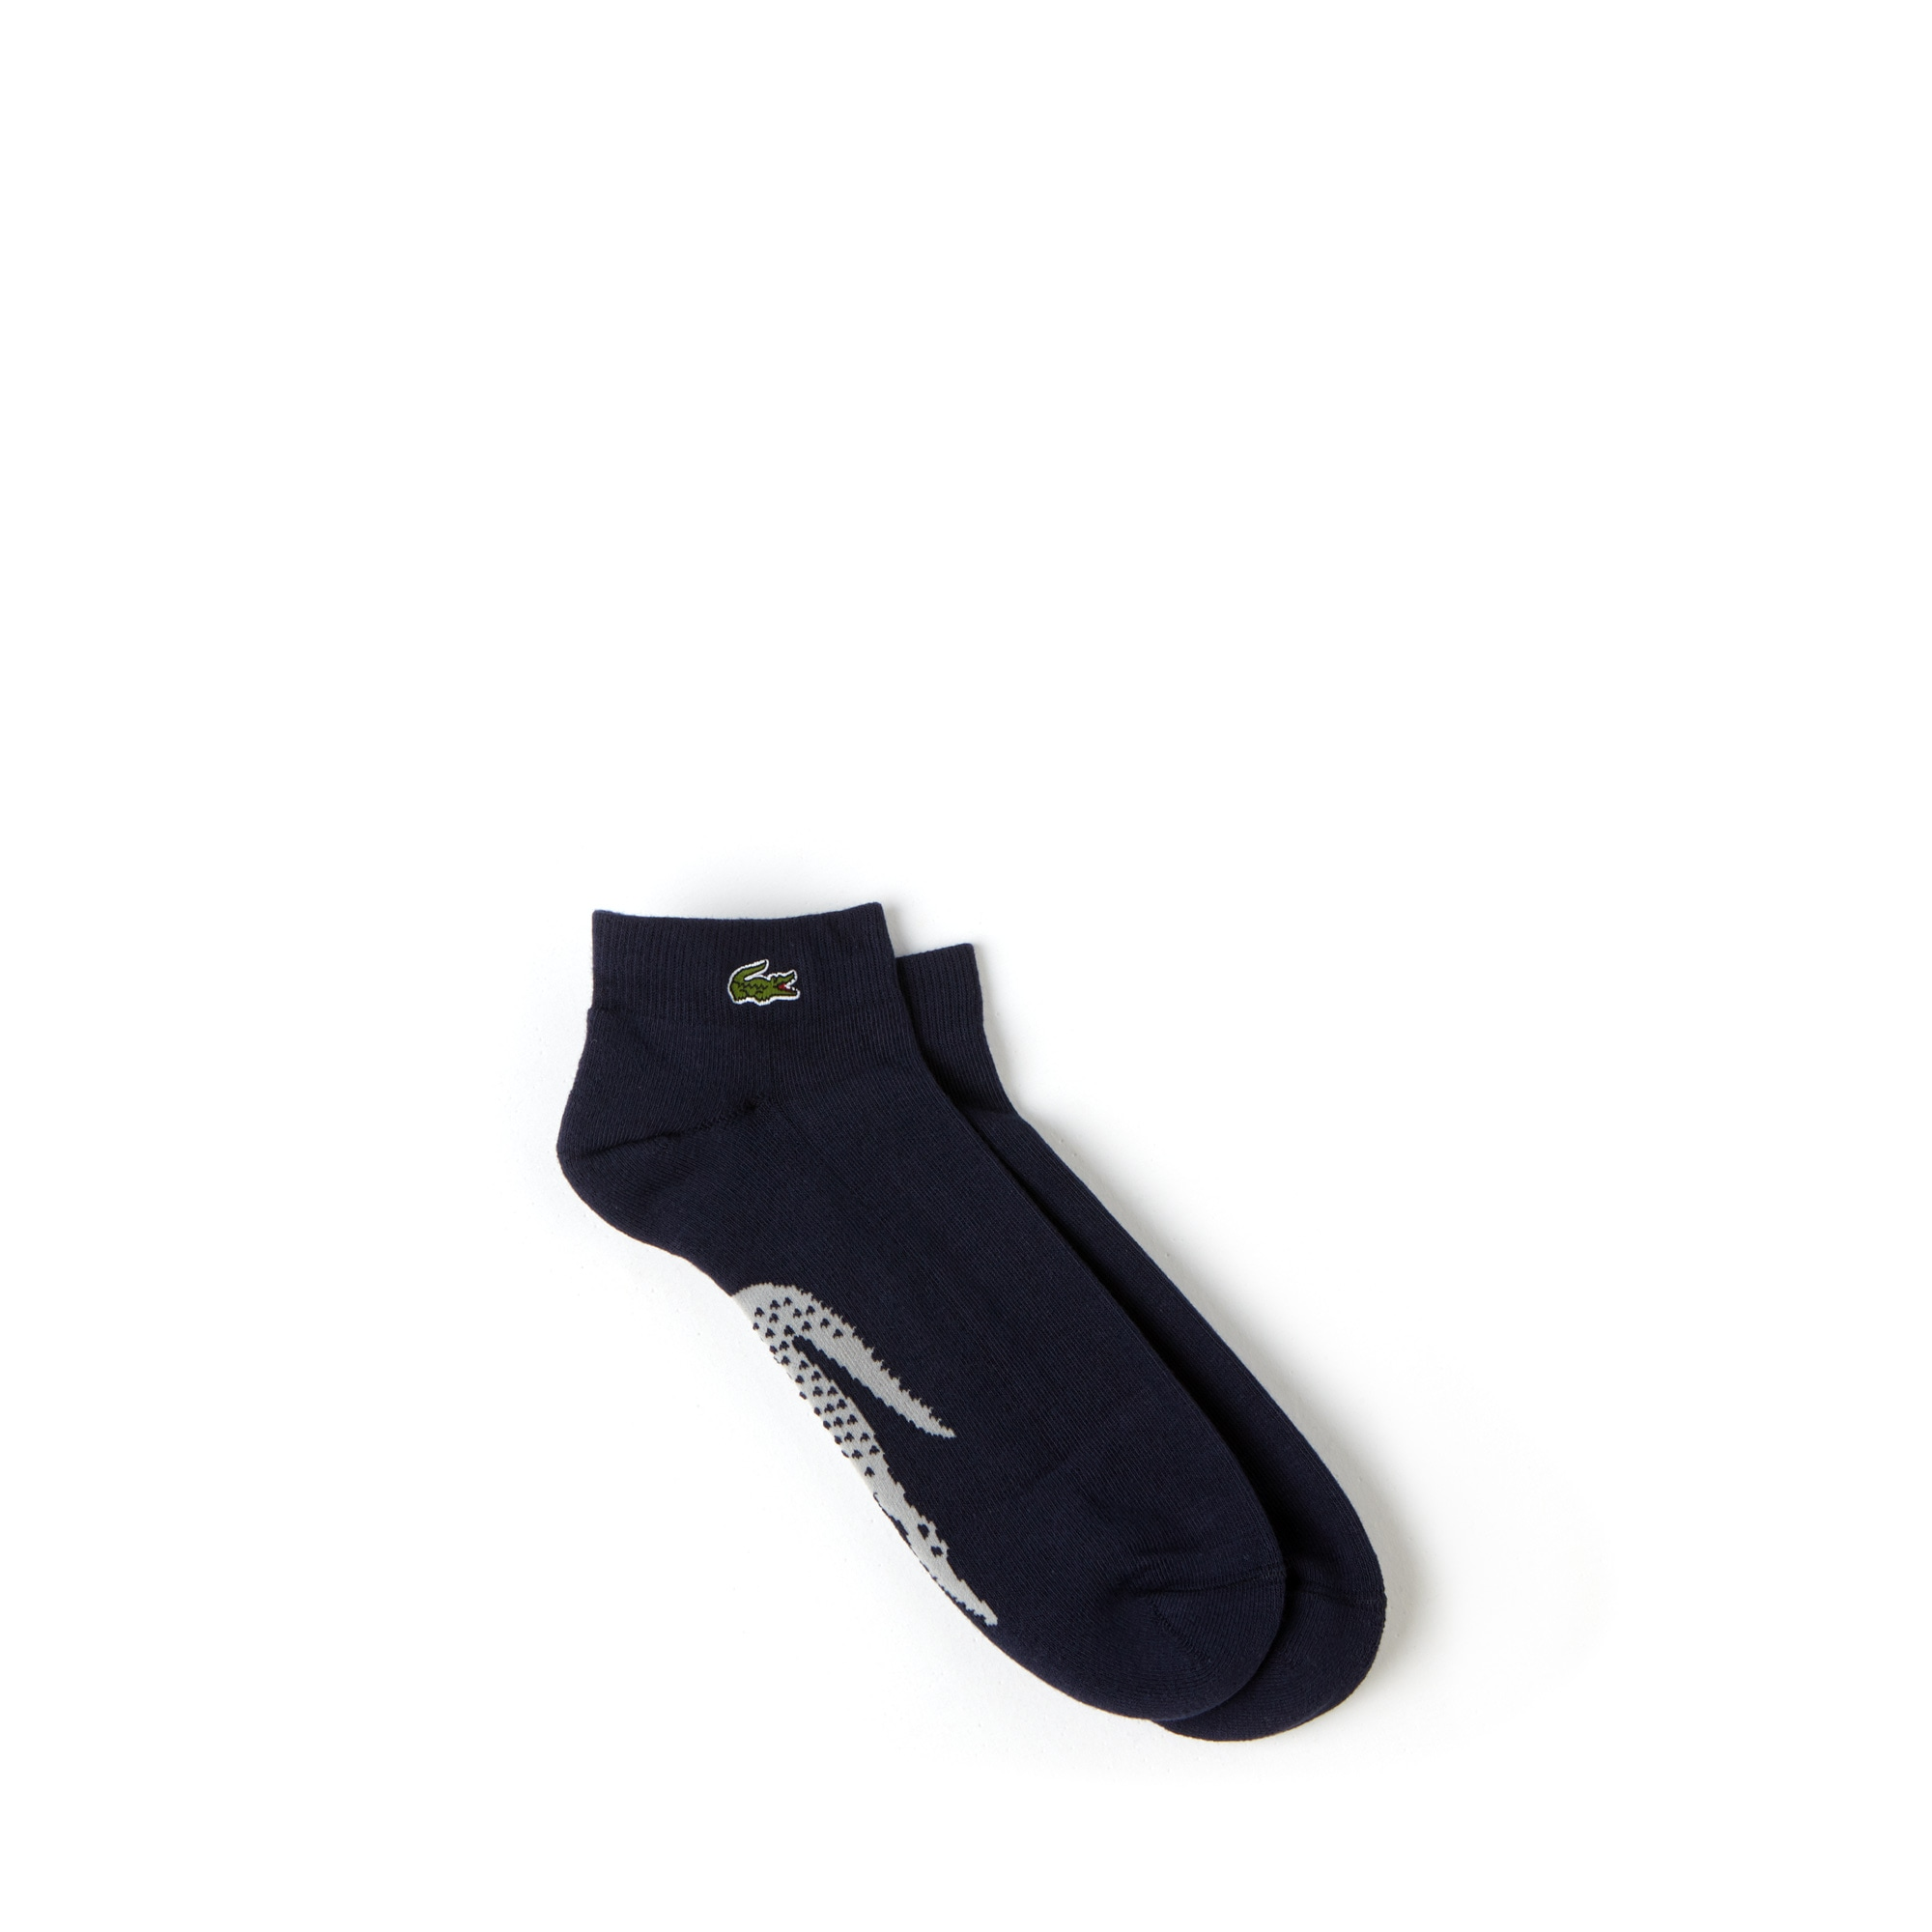 Men's SPORT Tennis Terrycloth Socks